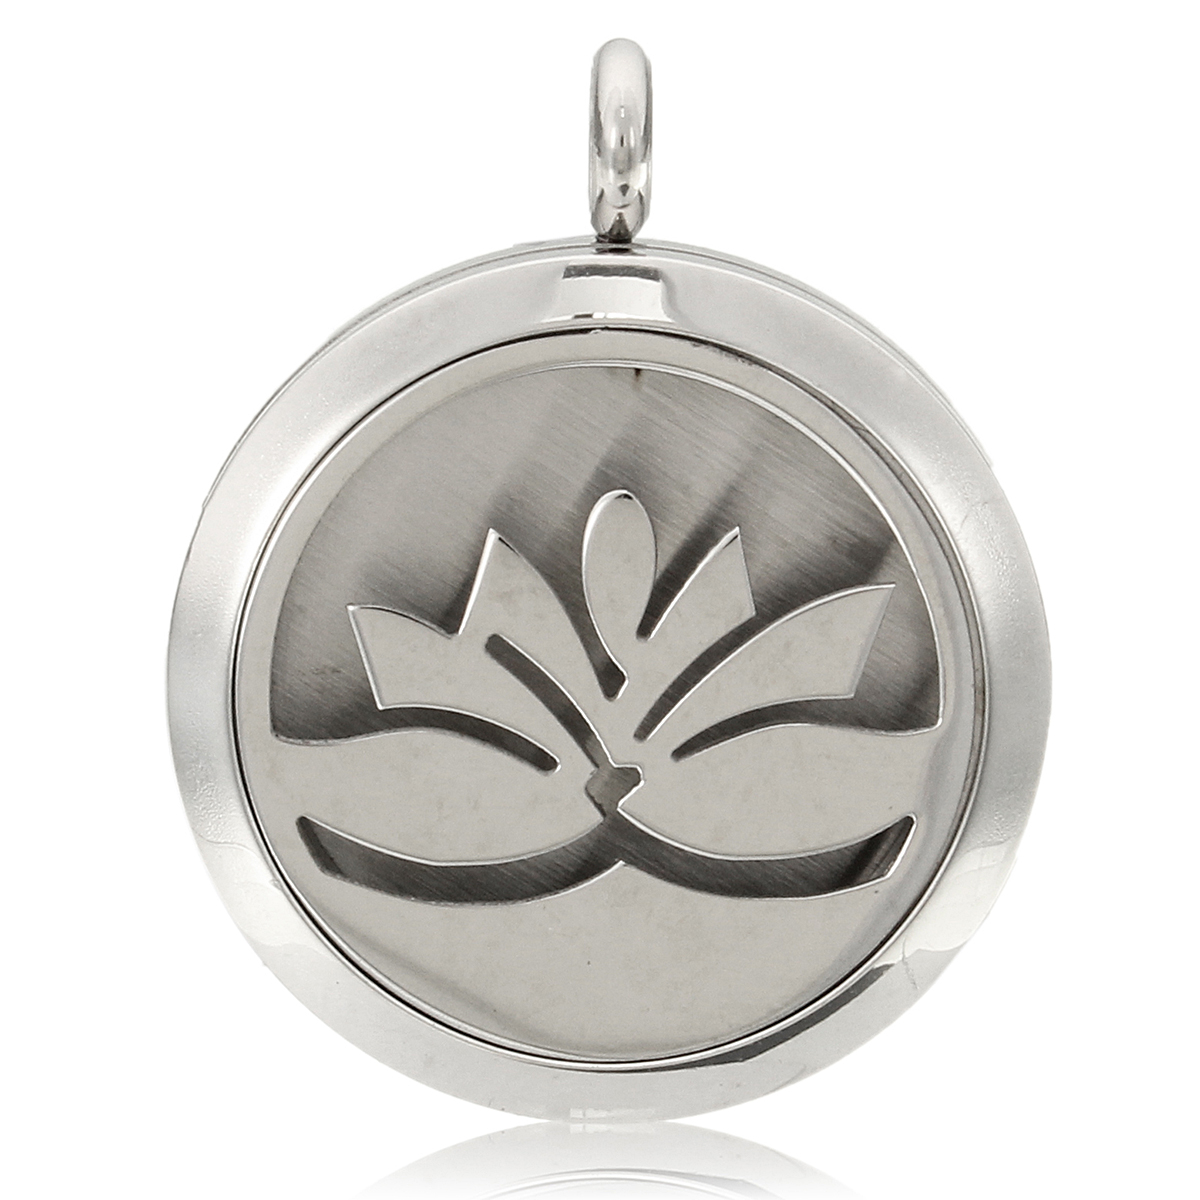 Stainless Steel Locket Necklace Perfume Aromatherapy Essential Oil Aroma Diffuser